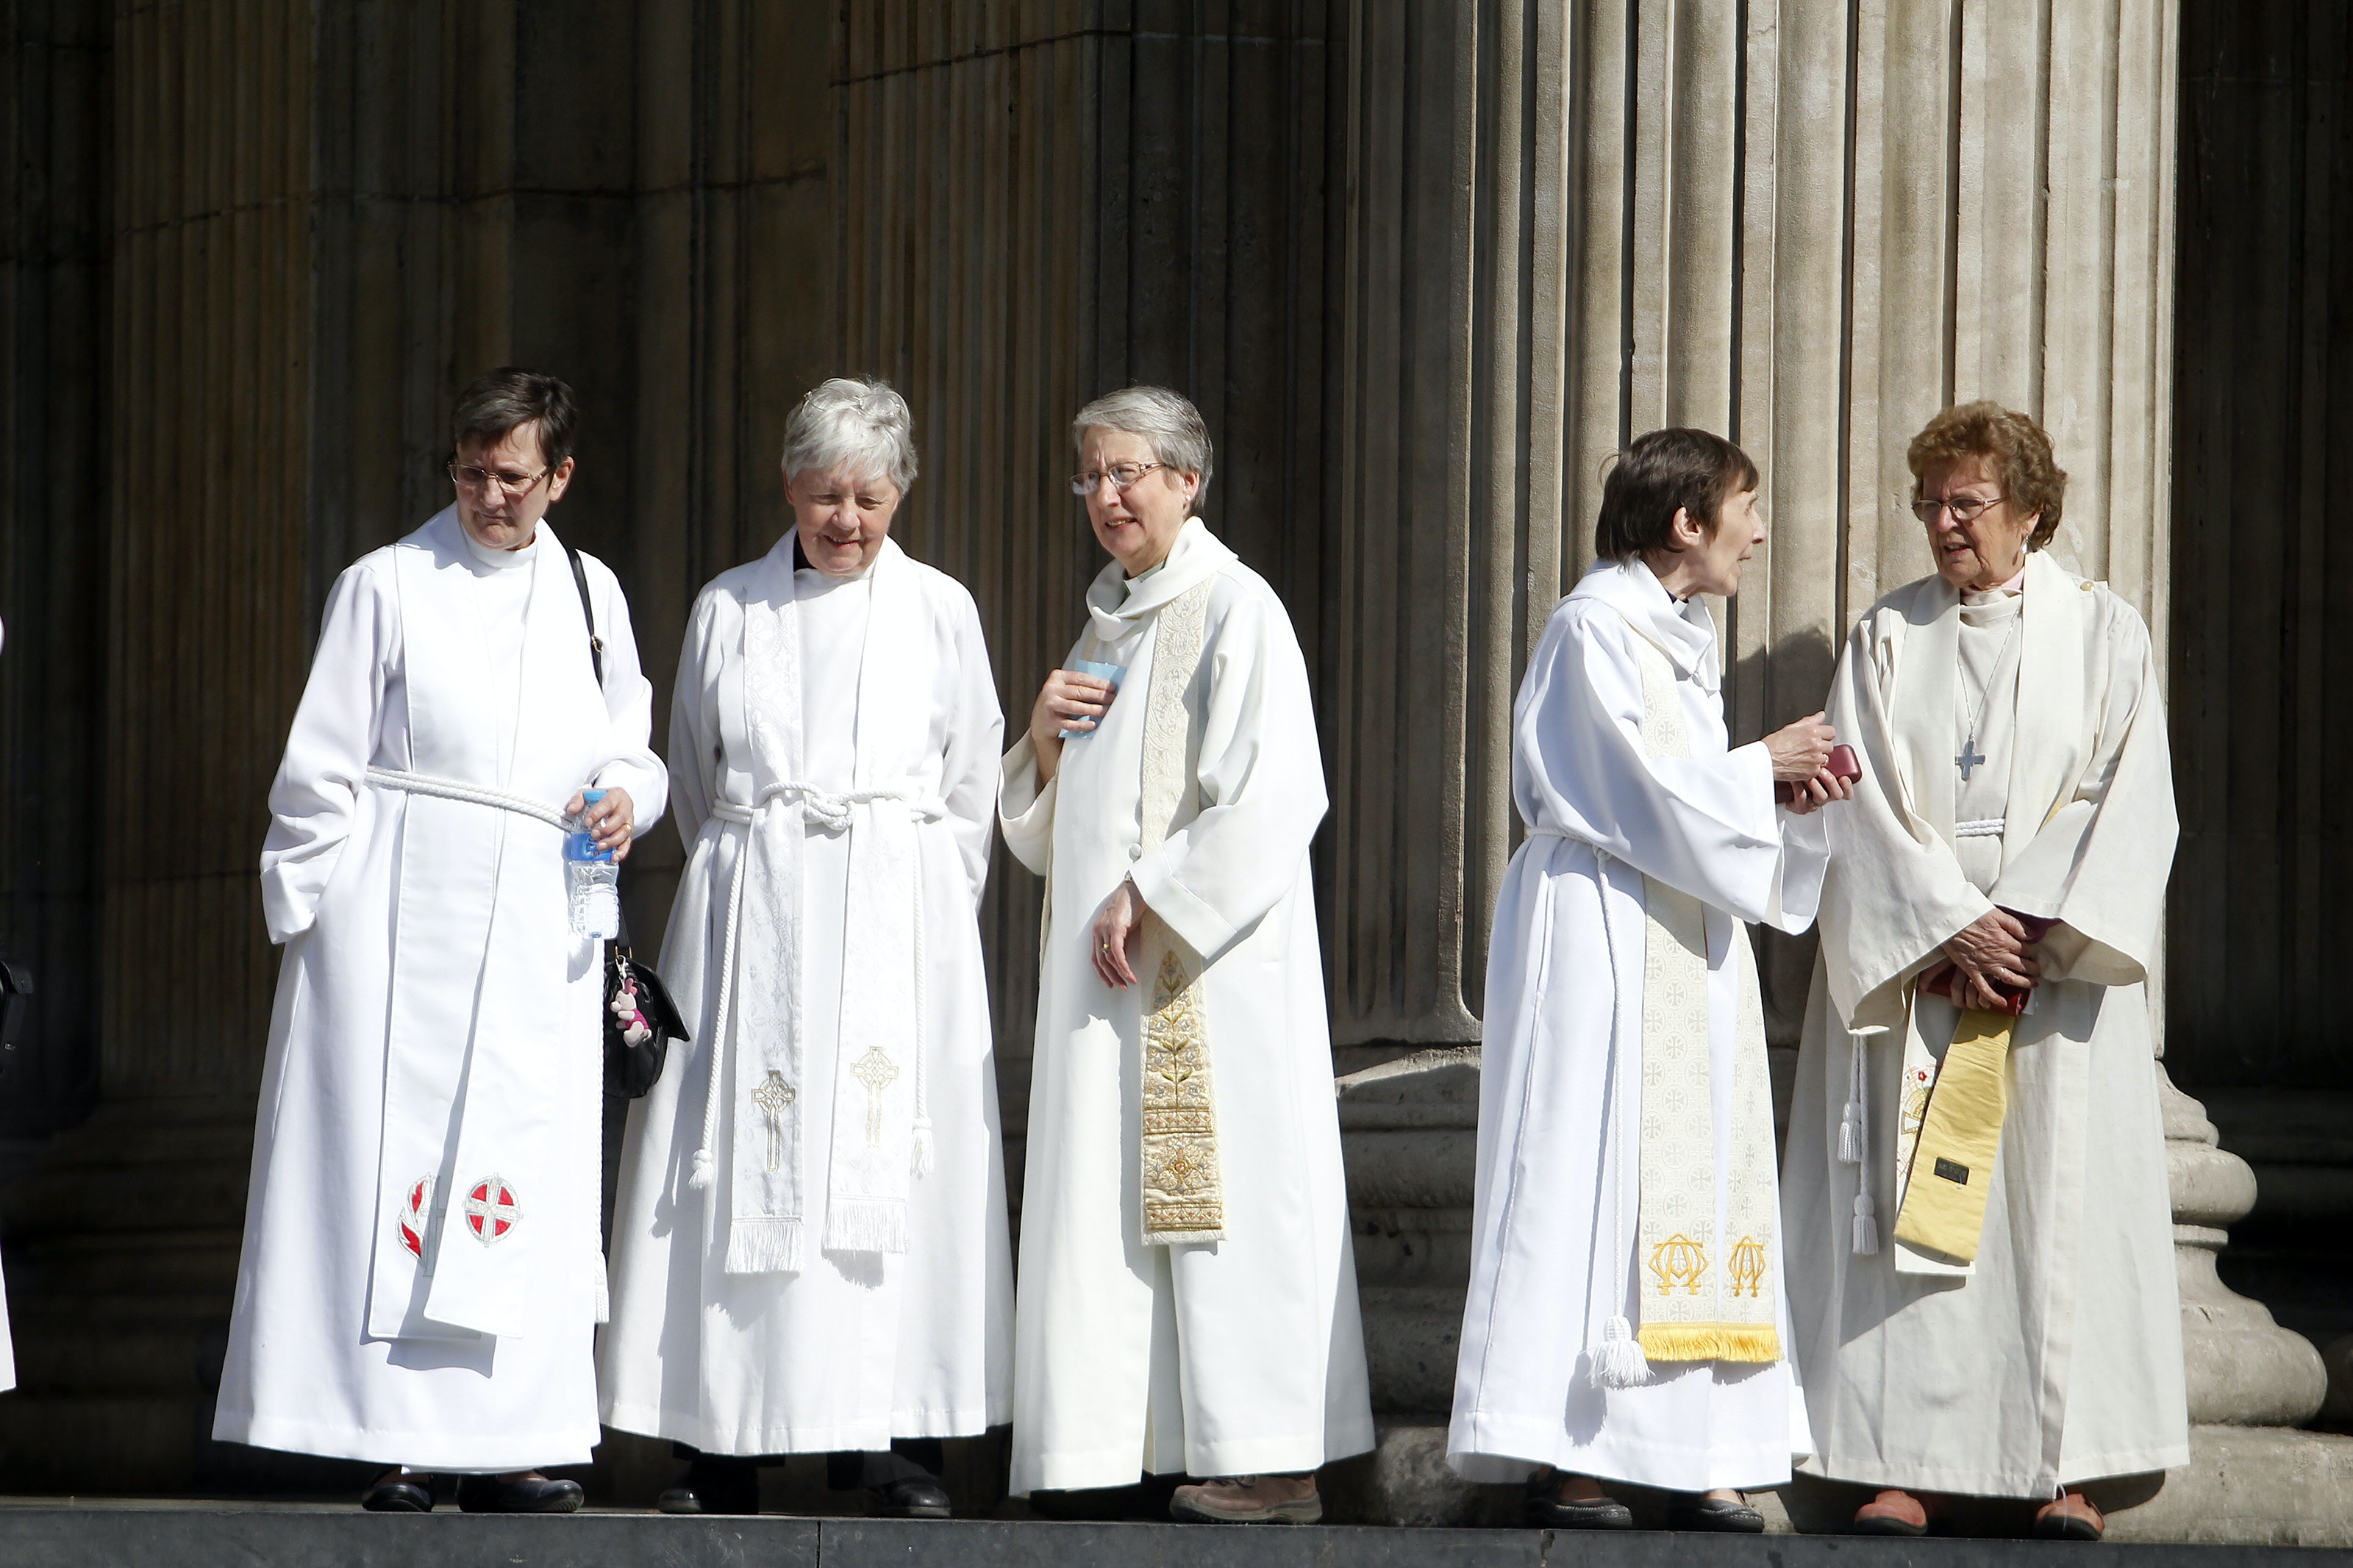 Roman Catholic Women Priests Are Appointing Themselves The Role The Vatican Never Gave Them